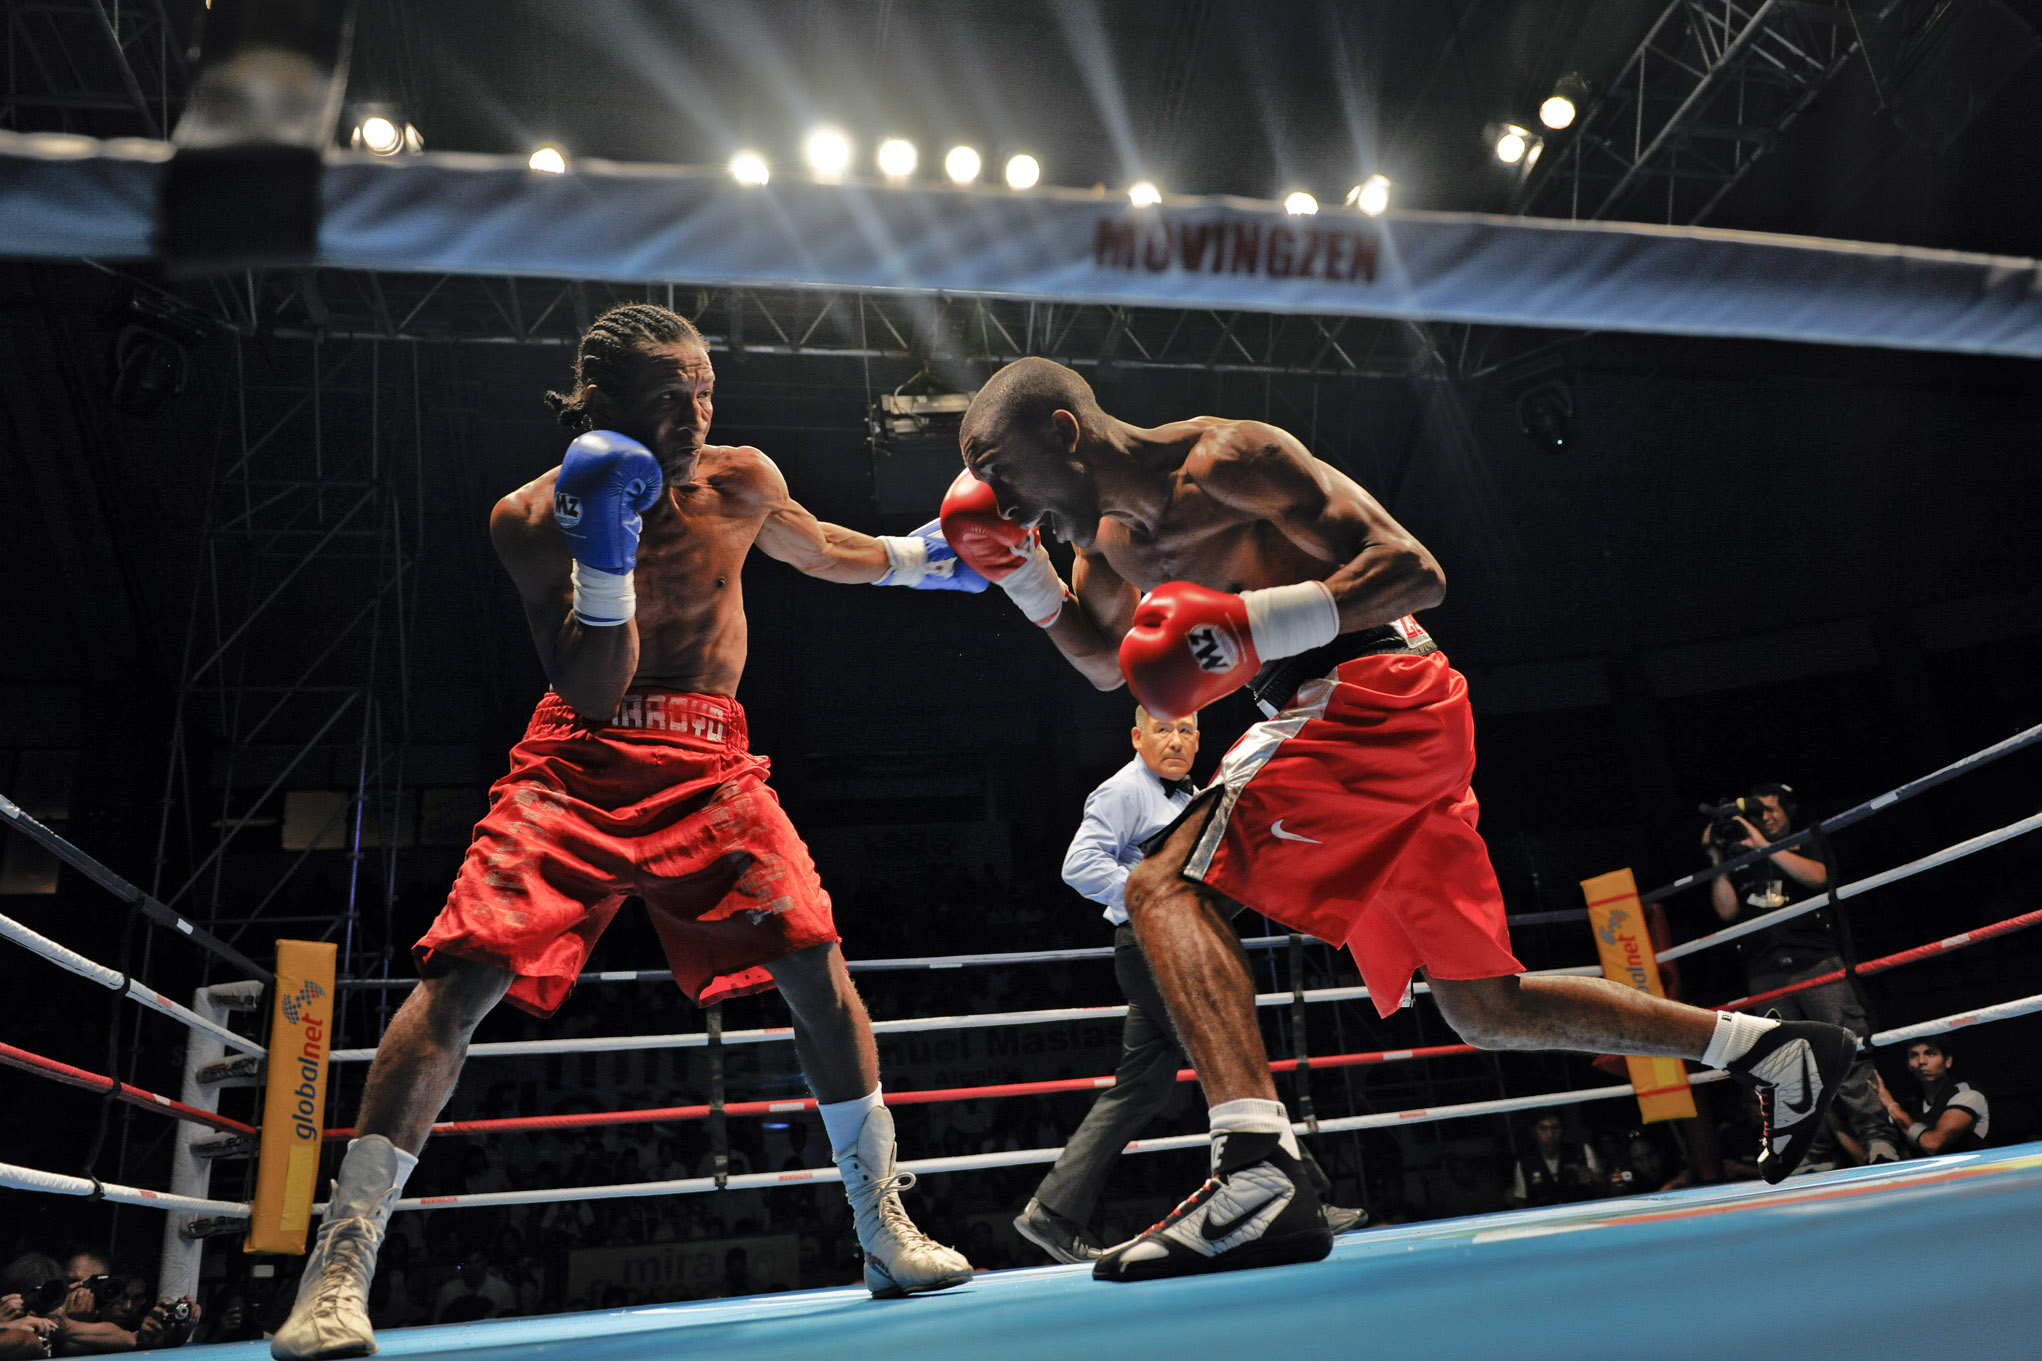 box fight in Lima ring miraflores